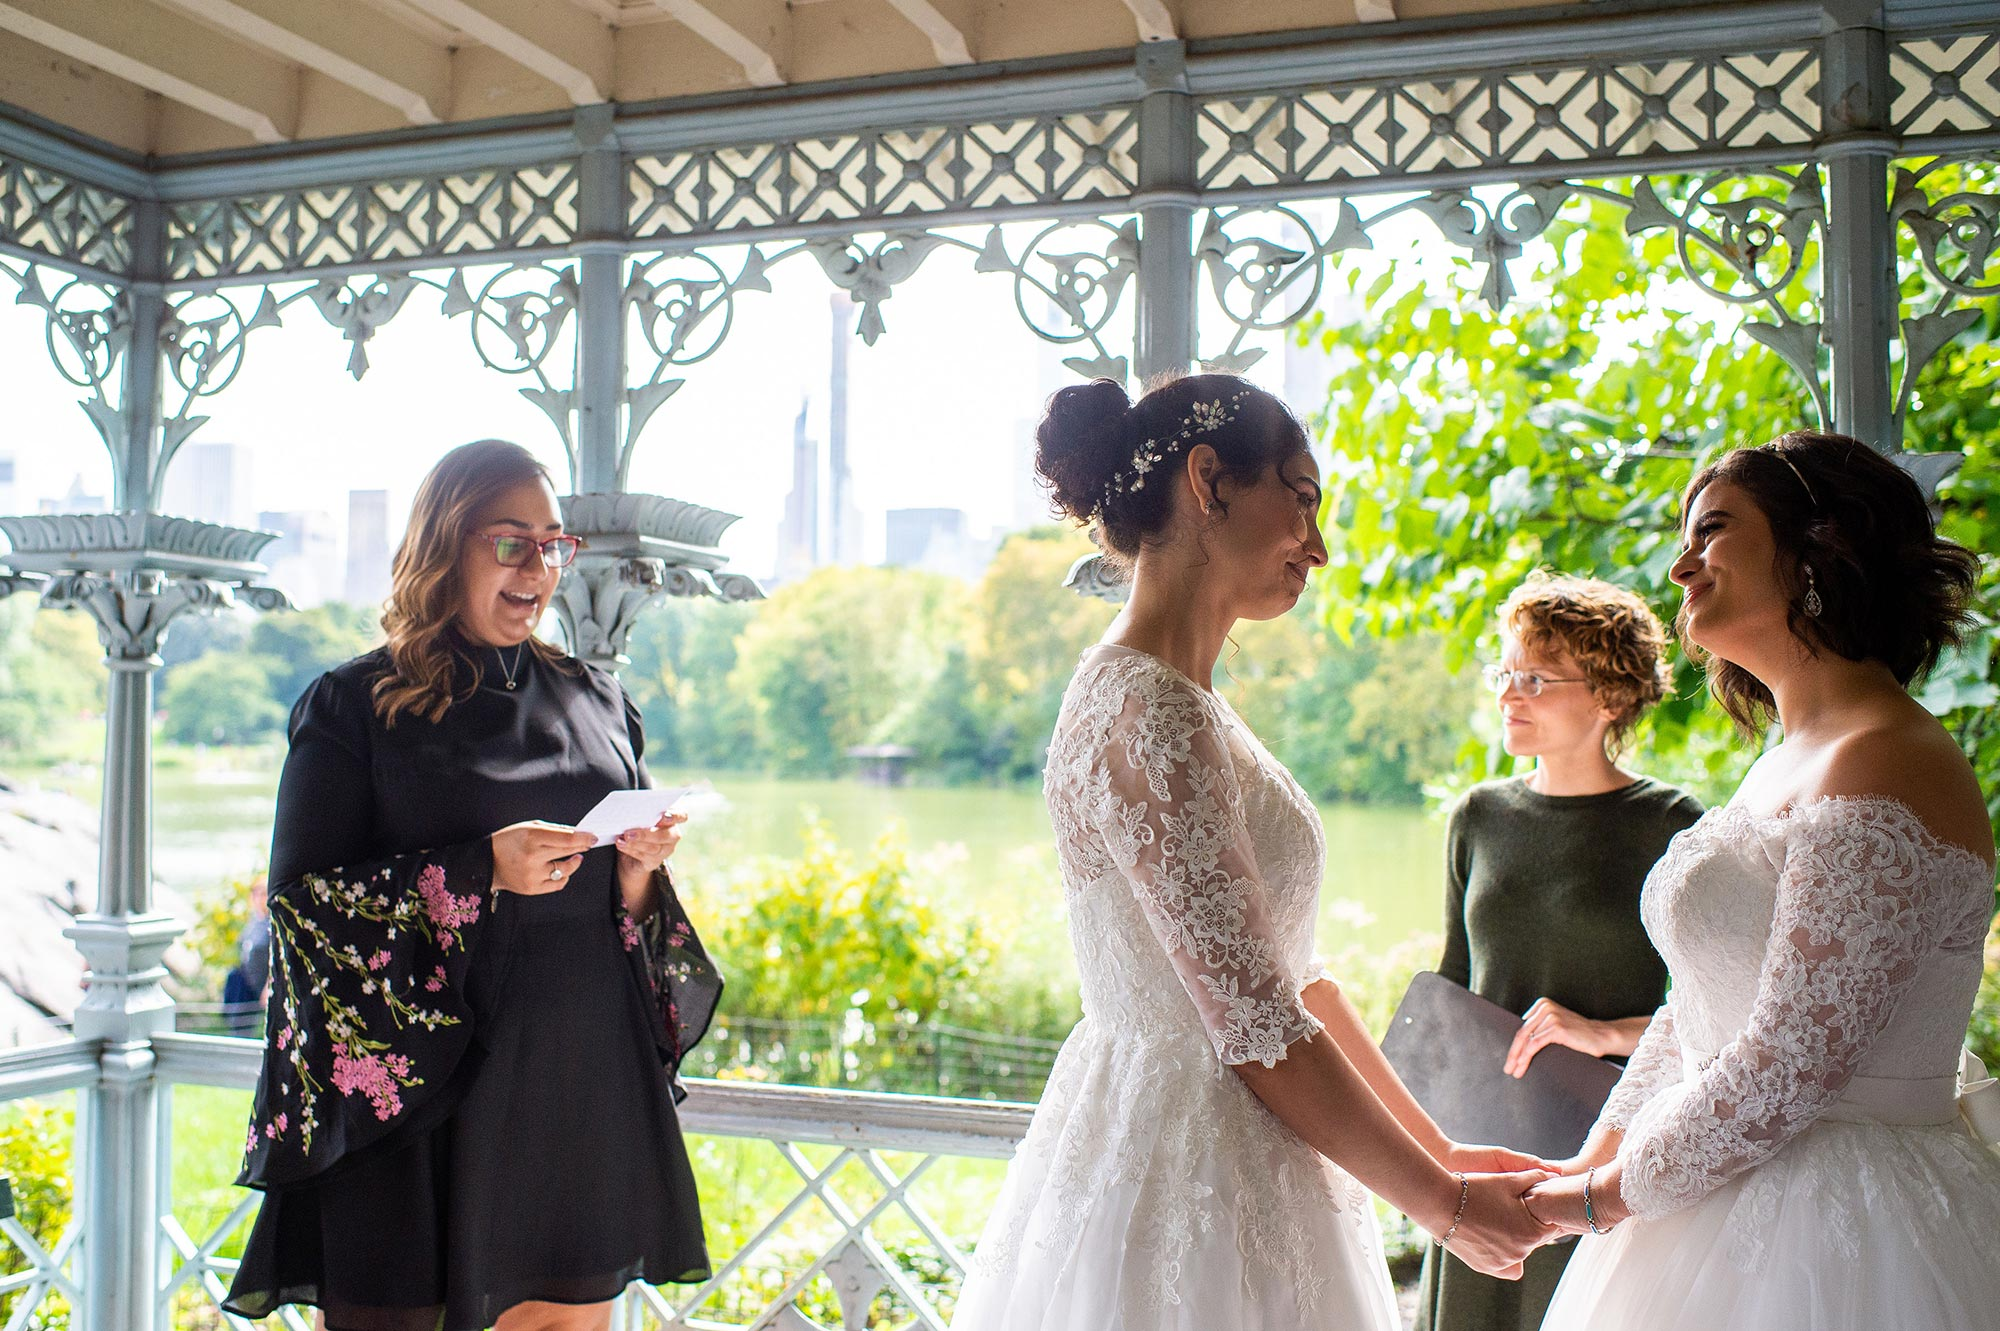 Wedding of Two Puerto Rican Brides at Ladies' Pavilion in Central Park New York City De Nueva Photography